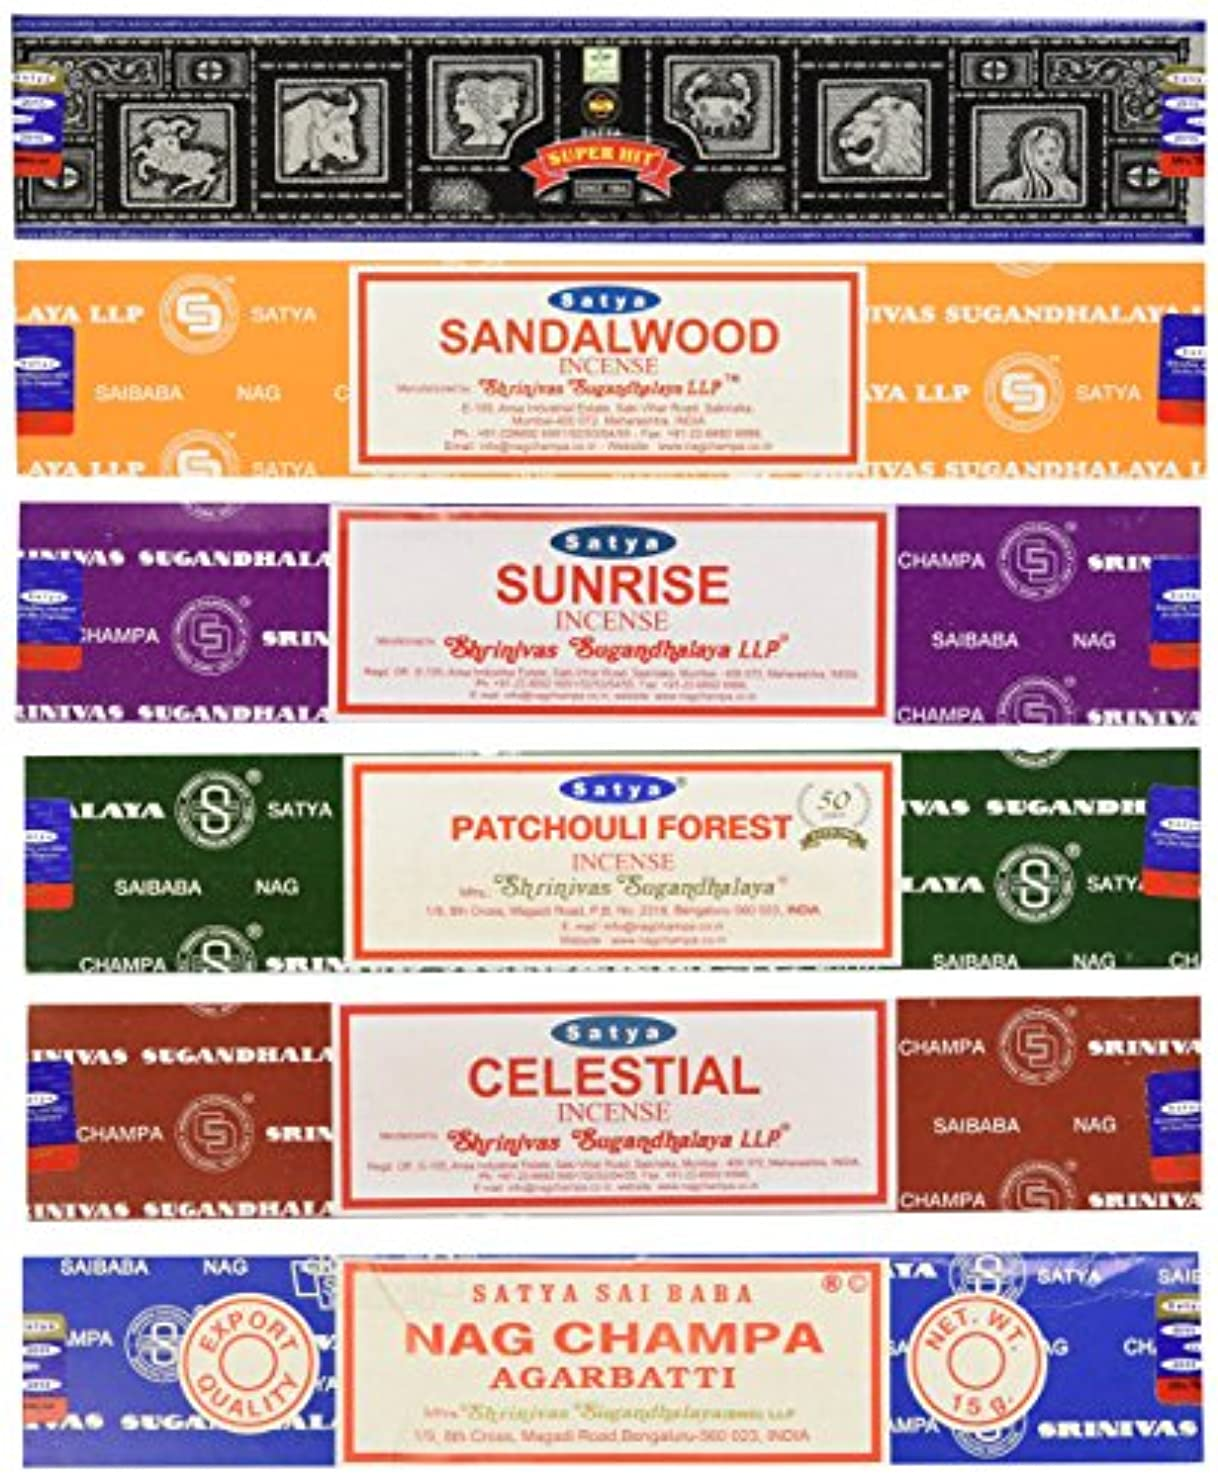 平らにする軌道暴力Set of 6 Nag Champa Sunrise Sandalwood Patchouli Celestial Super Hit by Satya